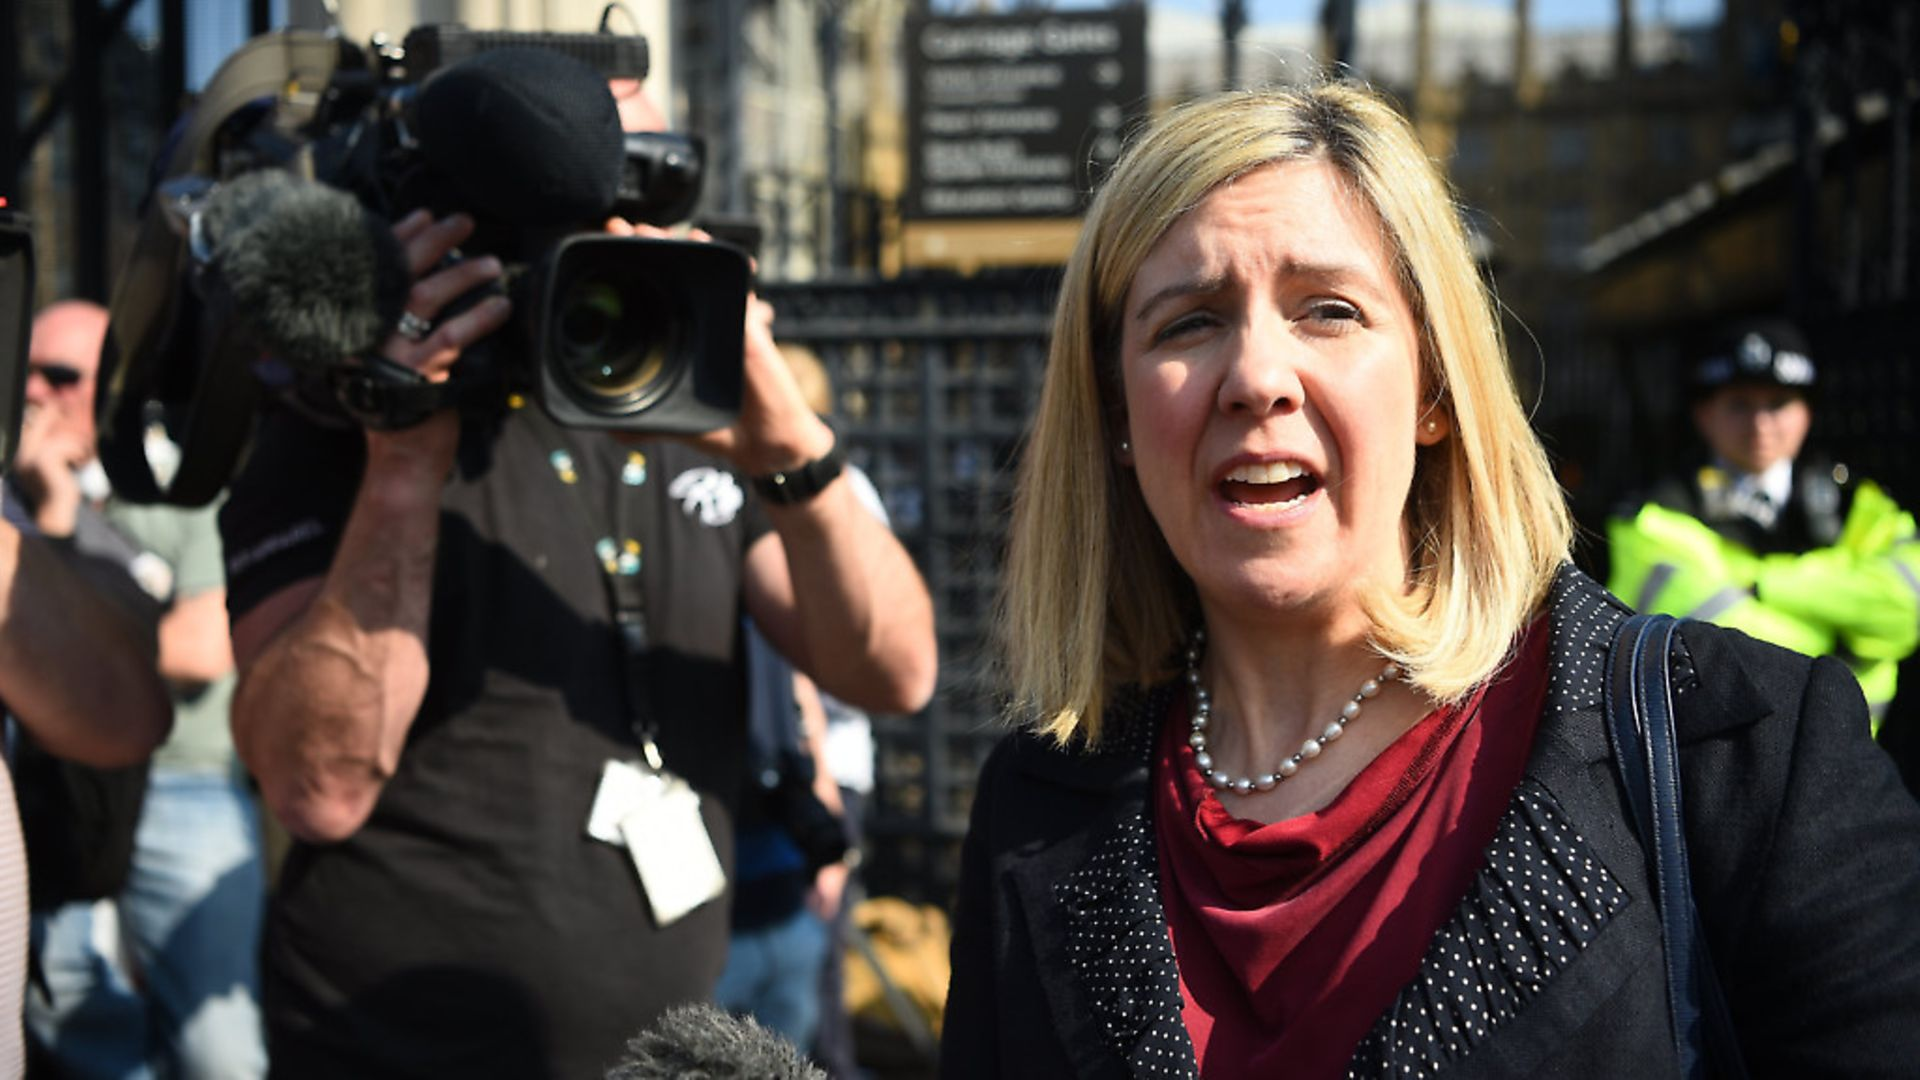 ERG deputy Andrea Jenkyns outside Westminster Palace; Kirsty O'Connor - Credit: PA